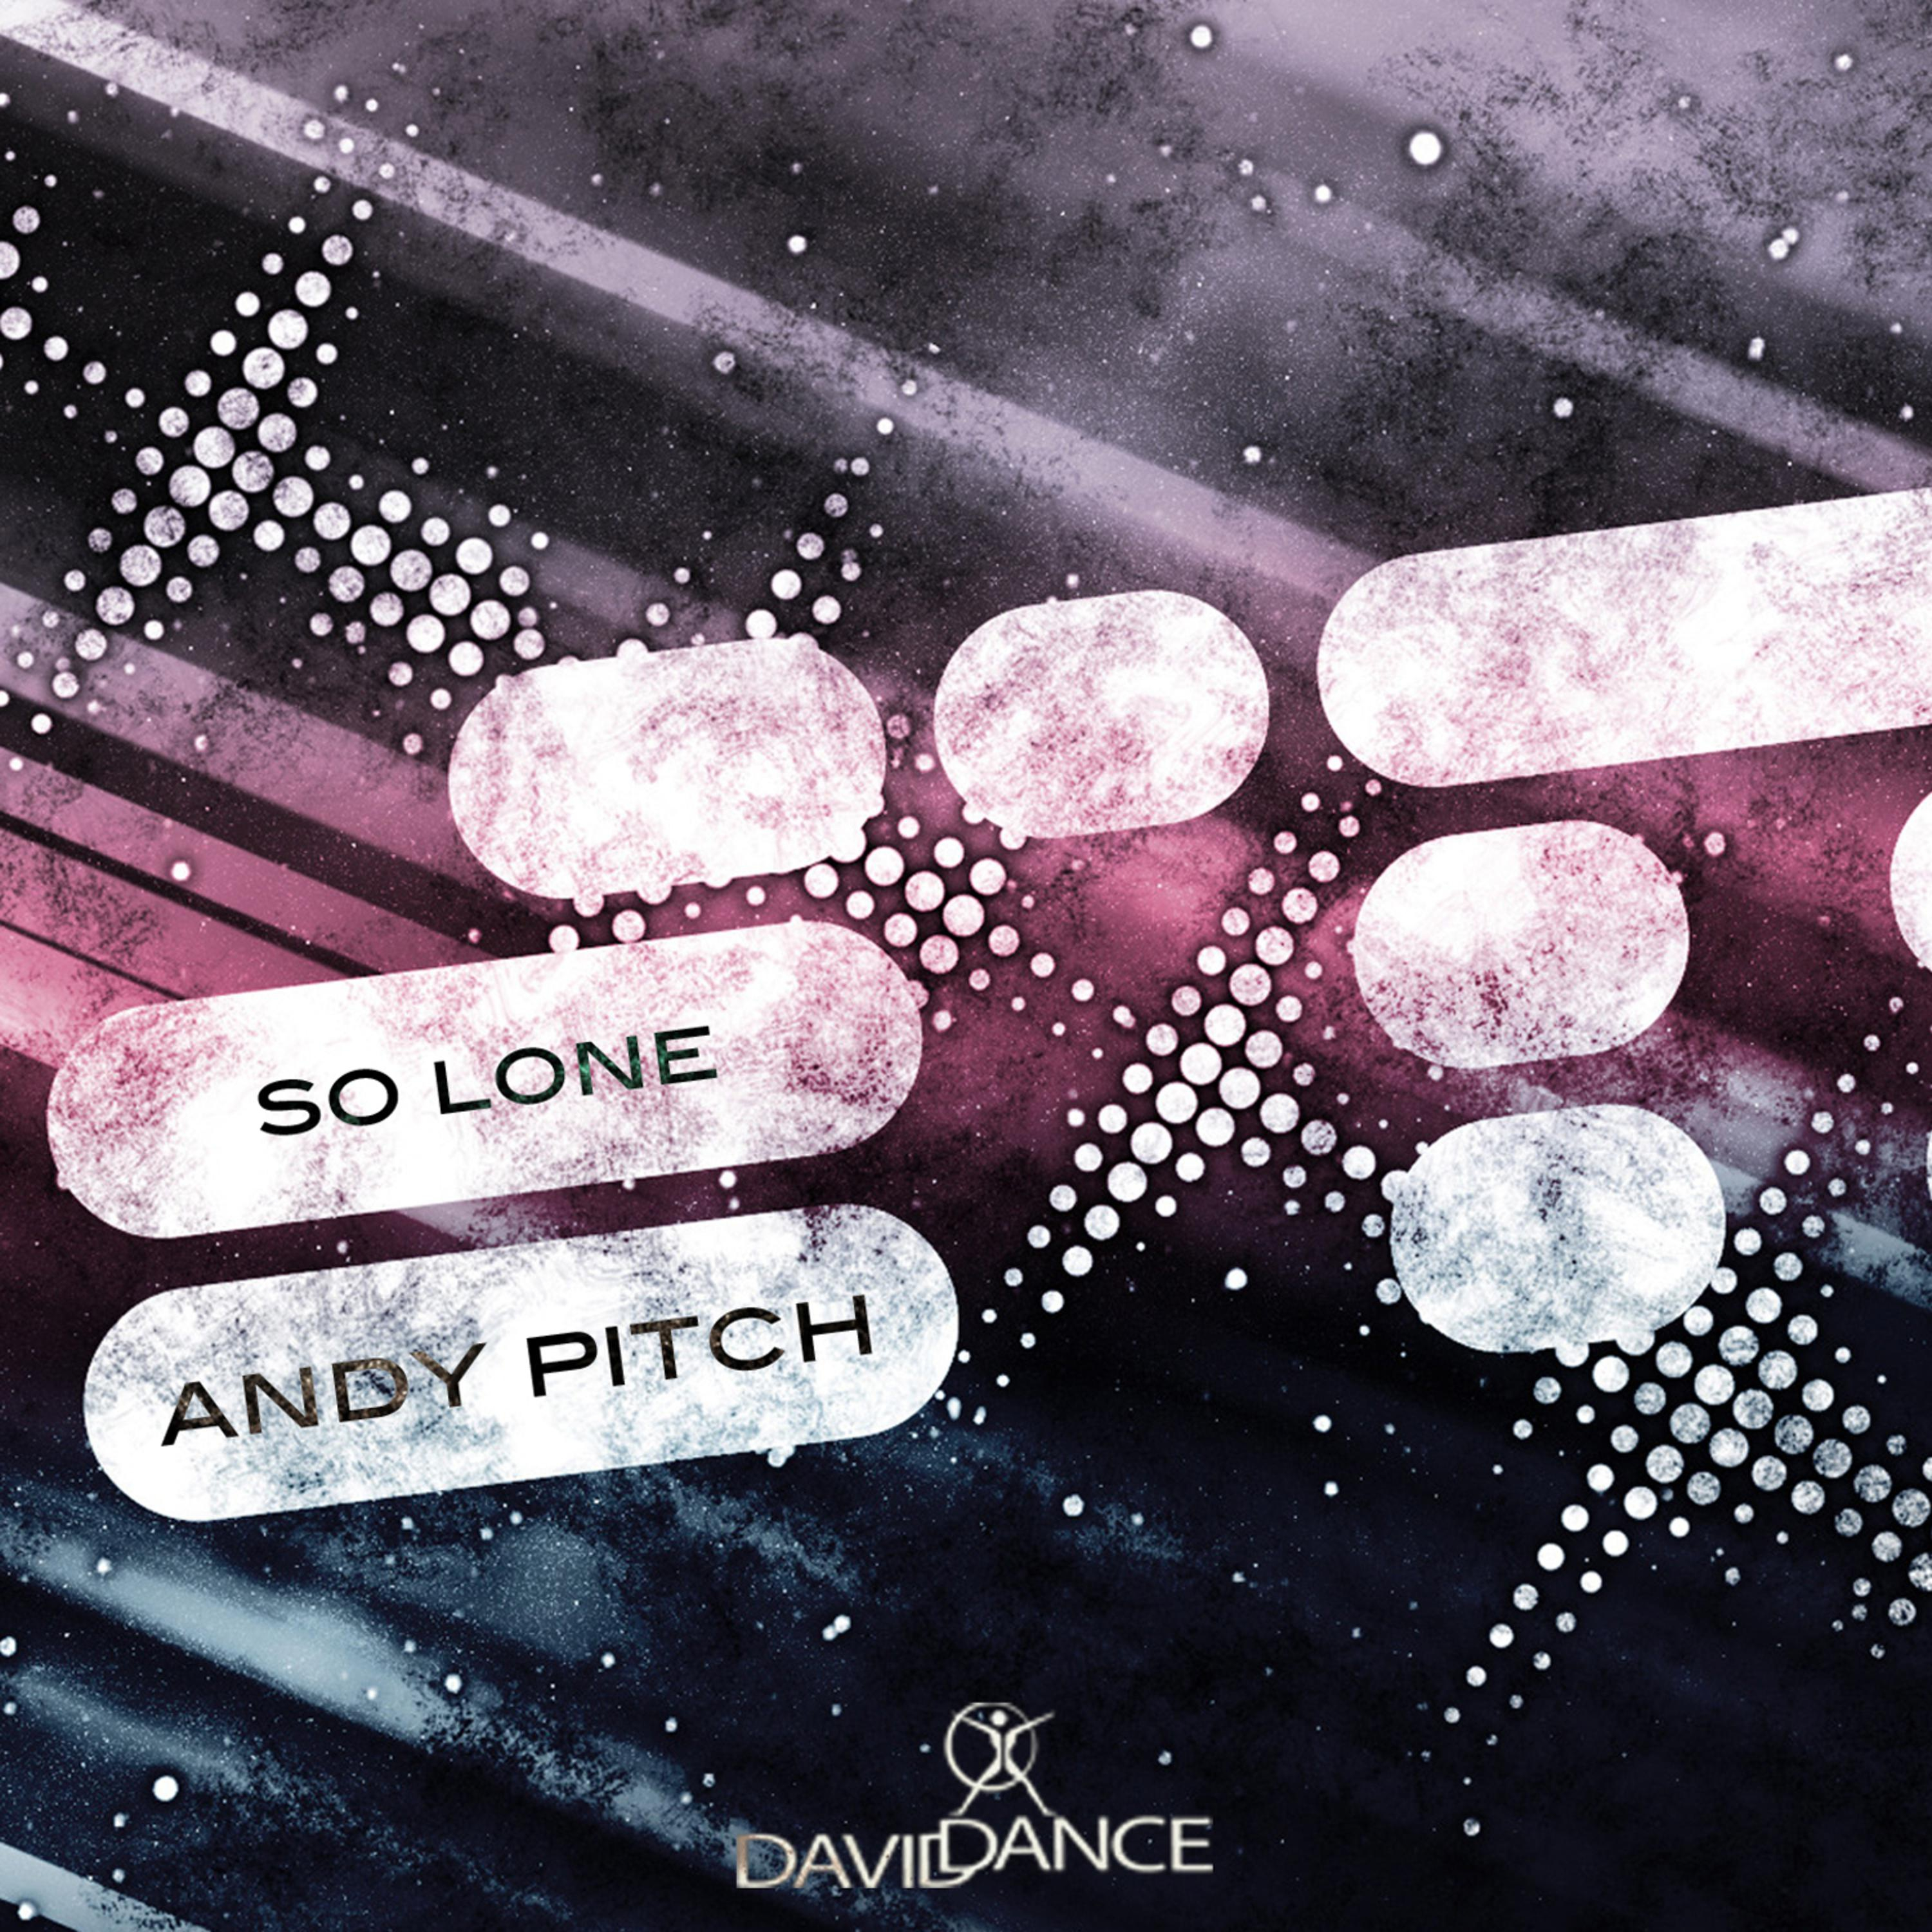 Andy Pitch - I\'m On It (Original mix)